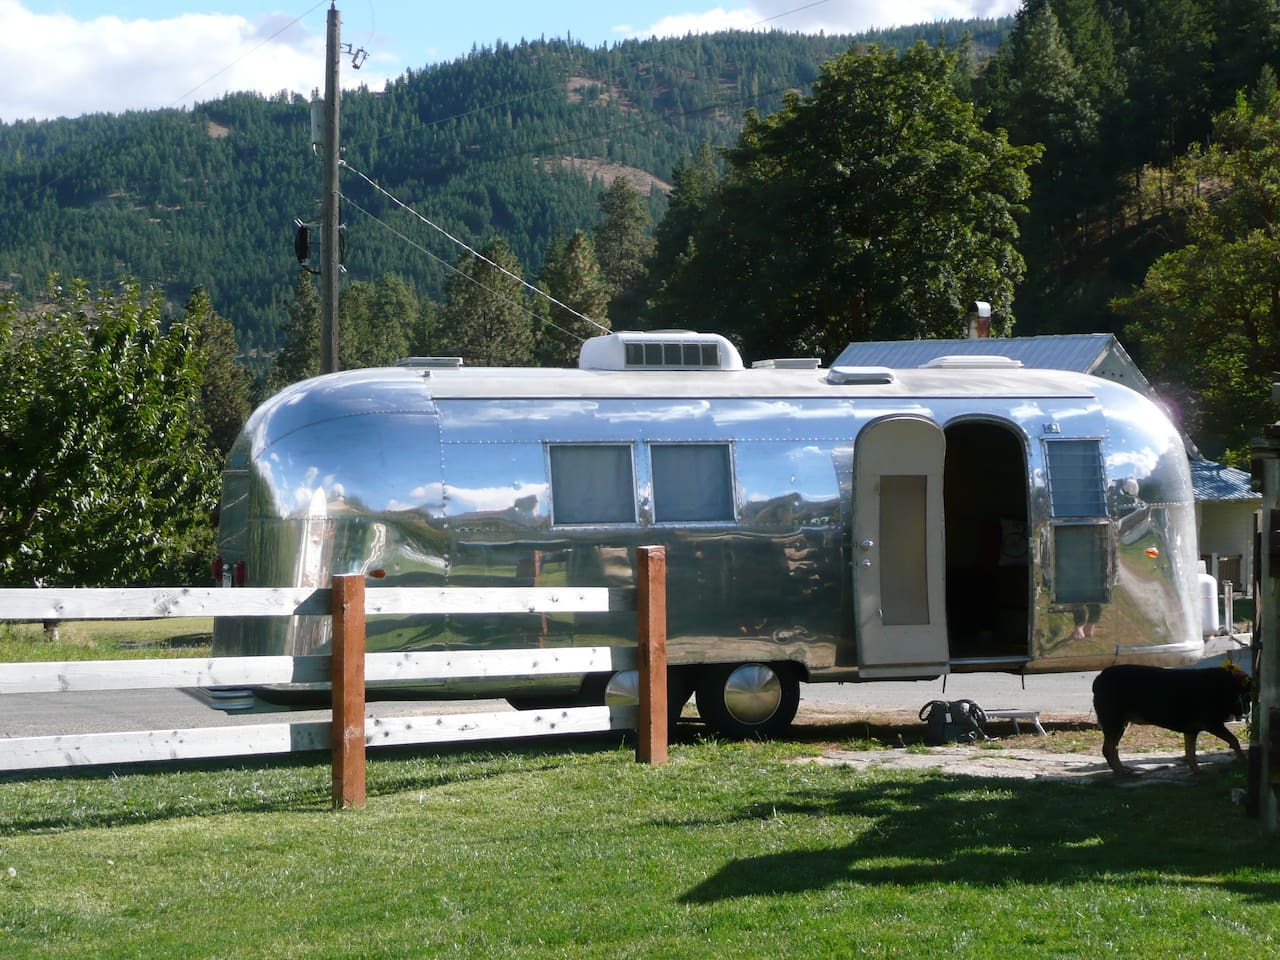 Vintage Airstream Trailer Delivered to Your Site